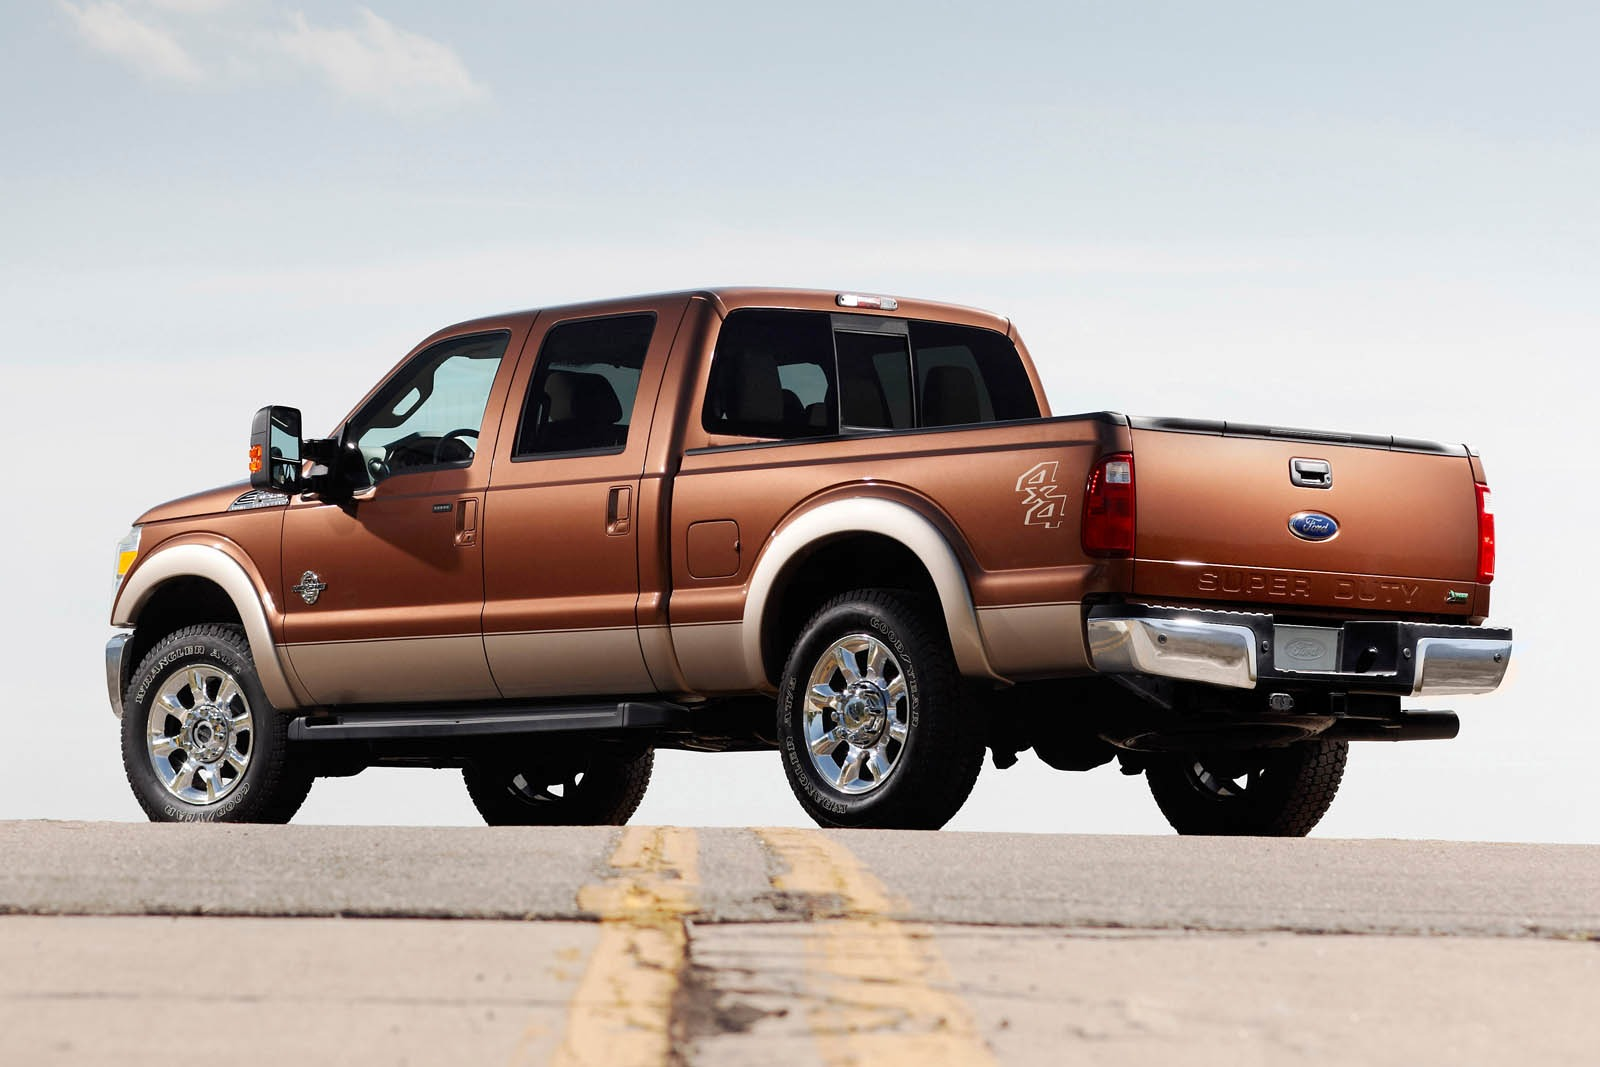 2012 Ford F-250 Super Dut exterior #8